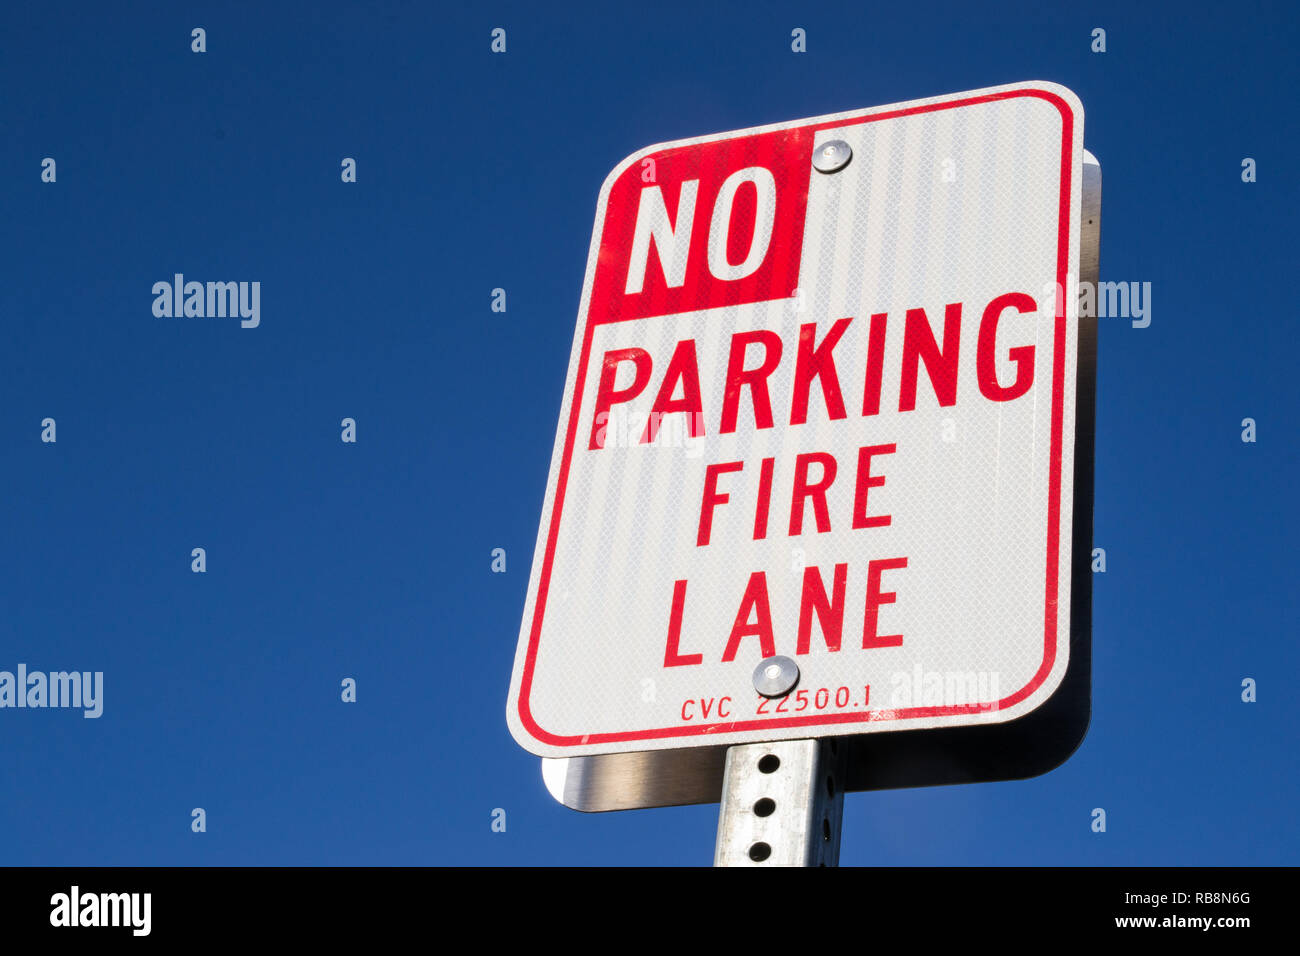 """The """"No parking fire lane"""" sign. Stock Photo"""